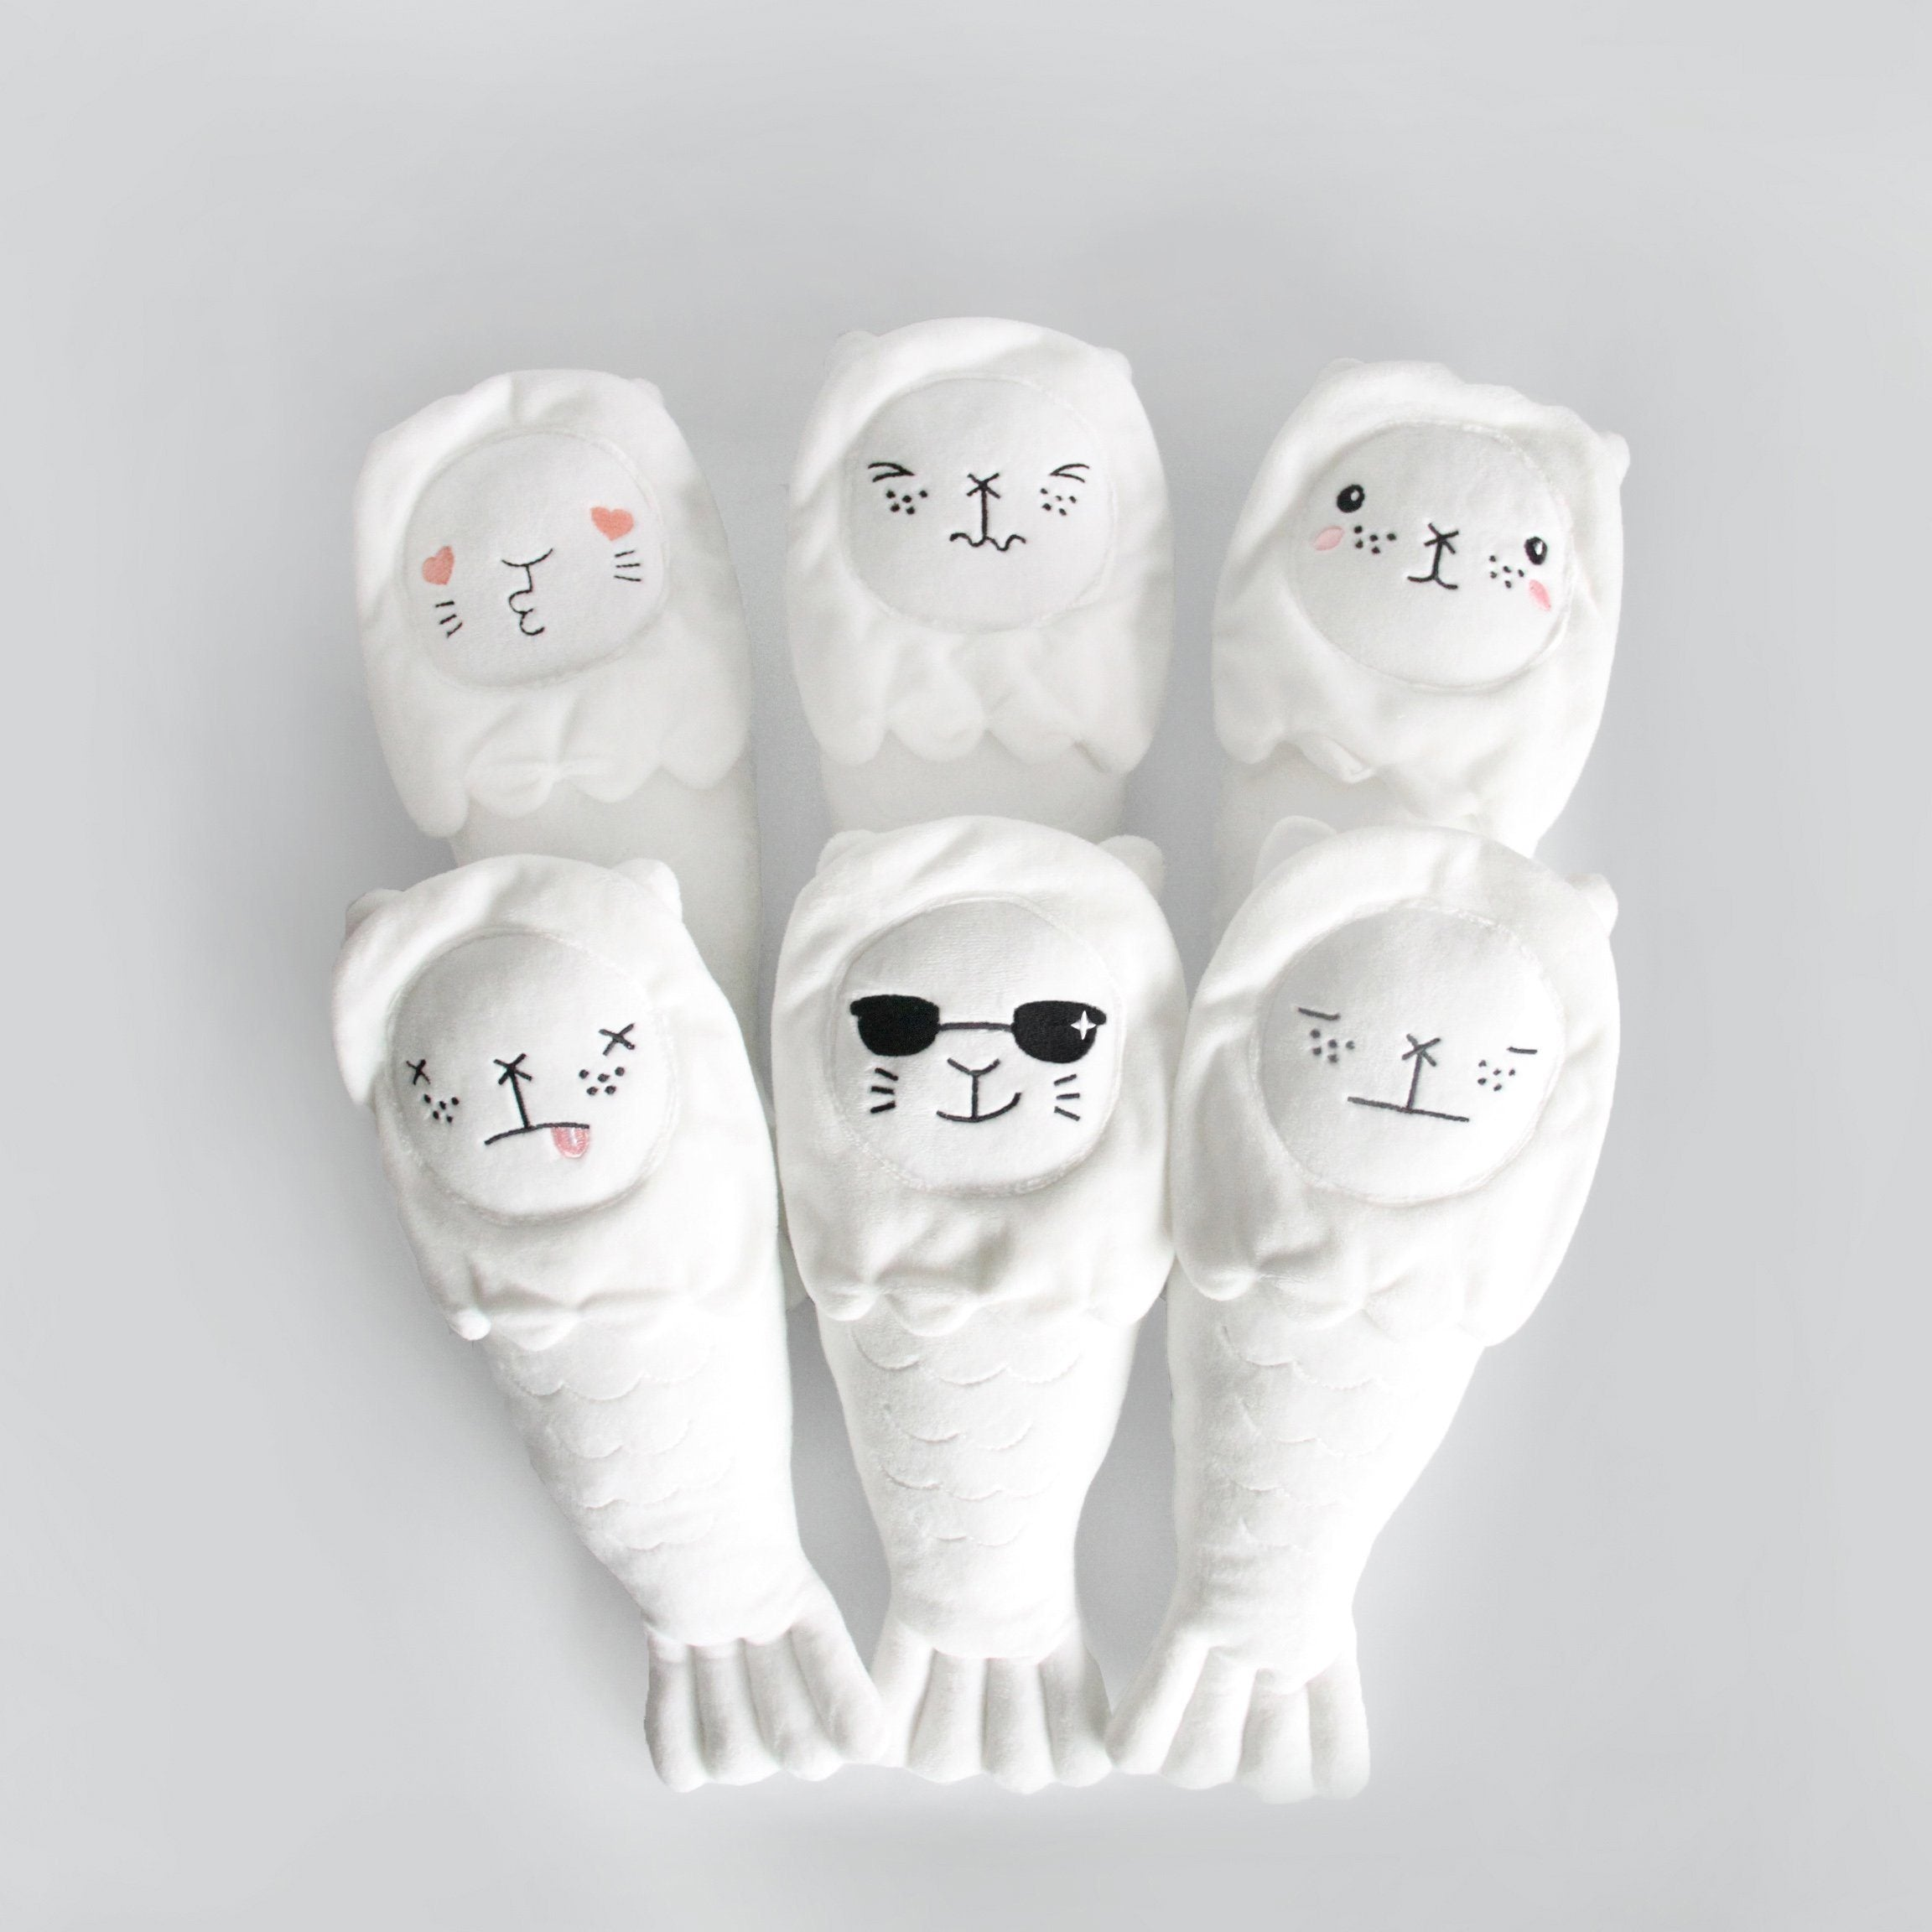 Merlion Chou Chou Mystery Faces Local Plushies Red Republic